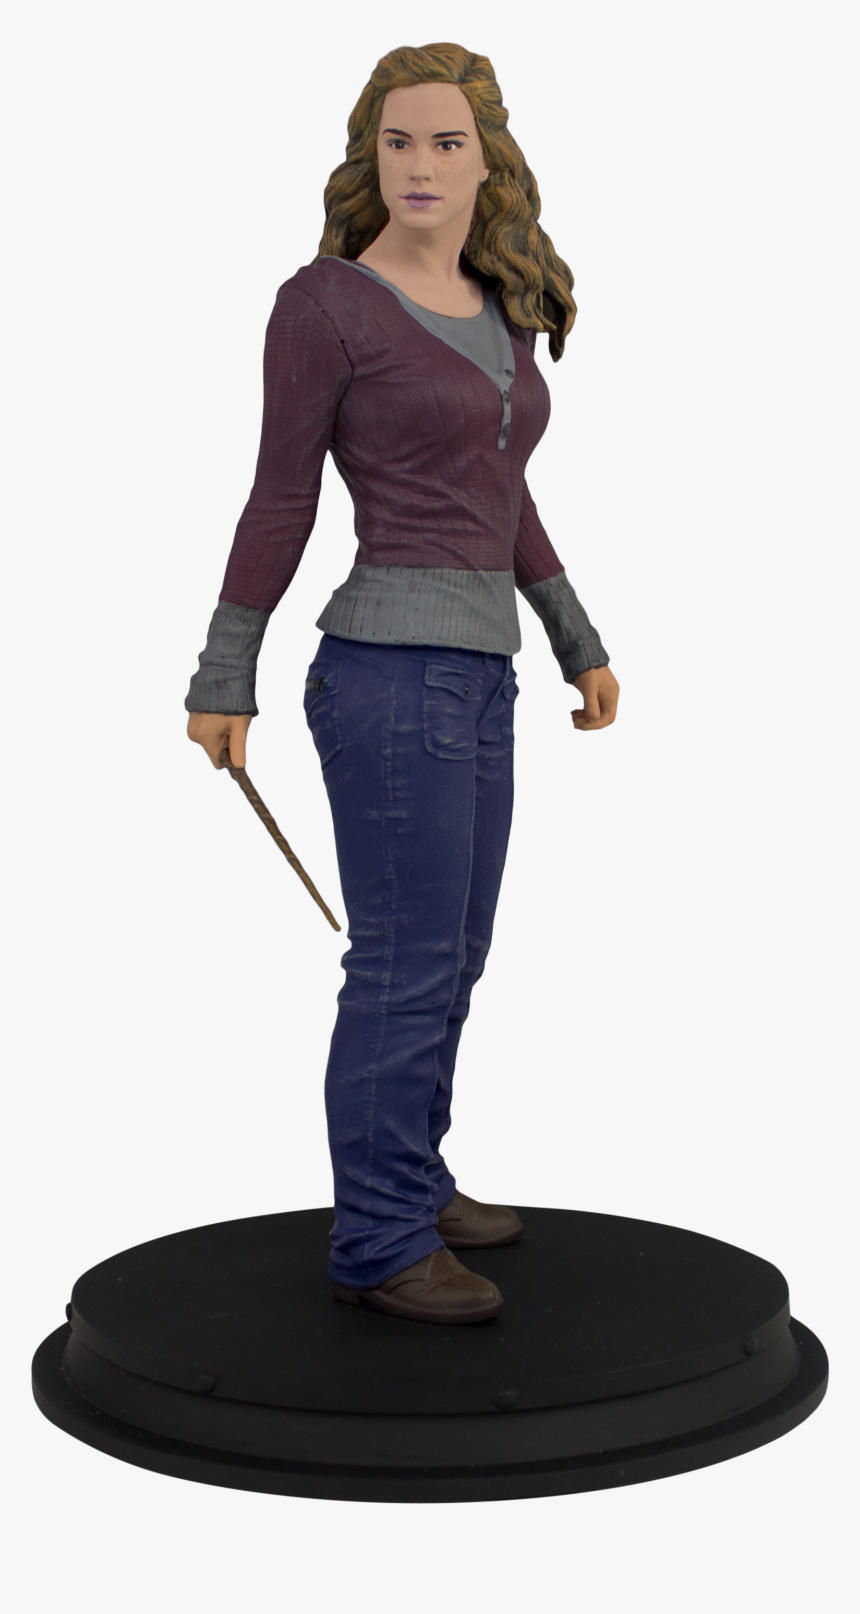 HARRY POTTER HERMIONE GRANGER HBP 1/9 SCALE POLYSTONE STATUE